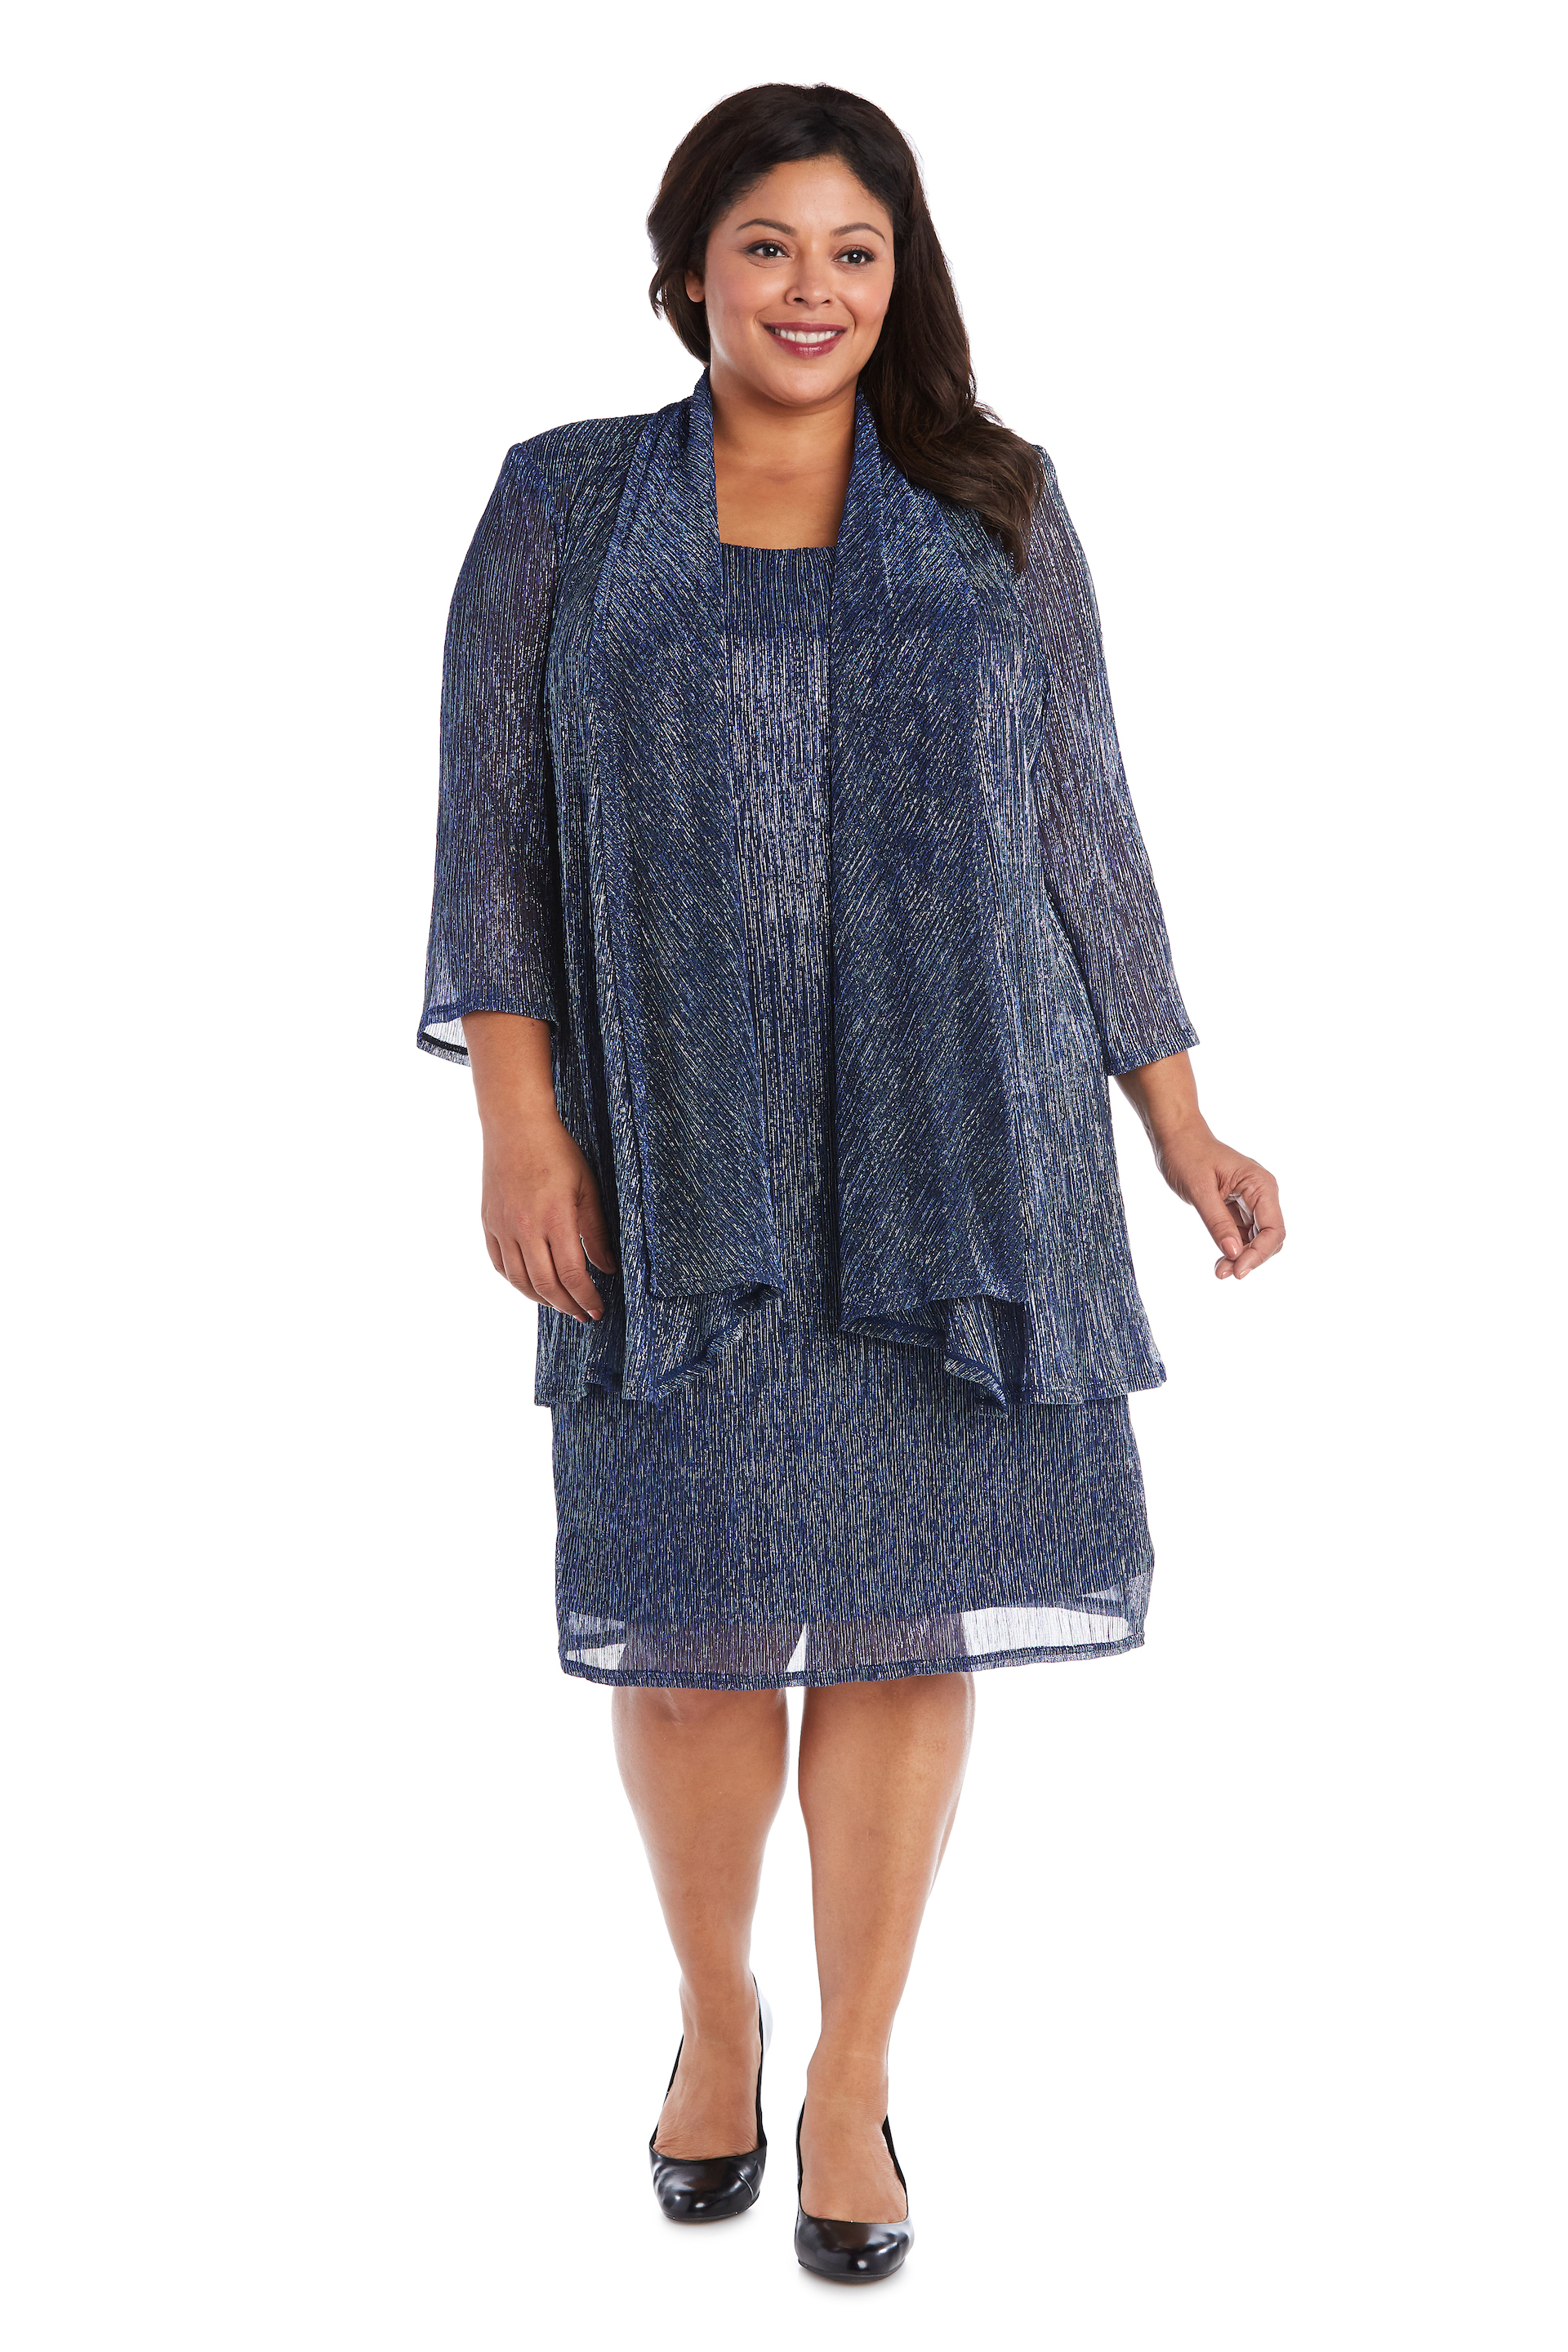 2pc Flyaway Metallic Jacket Dress -Blue - Front